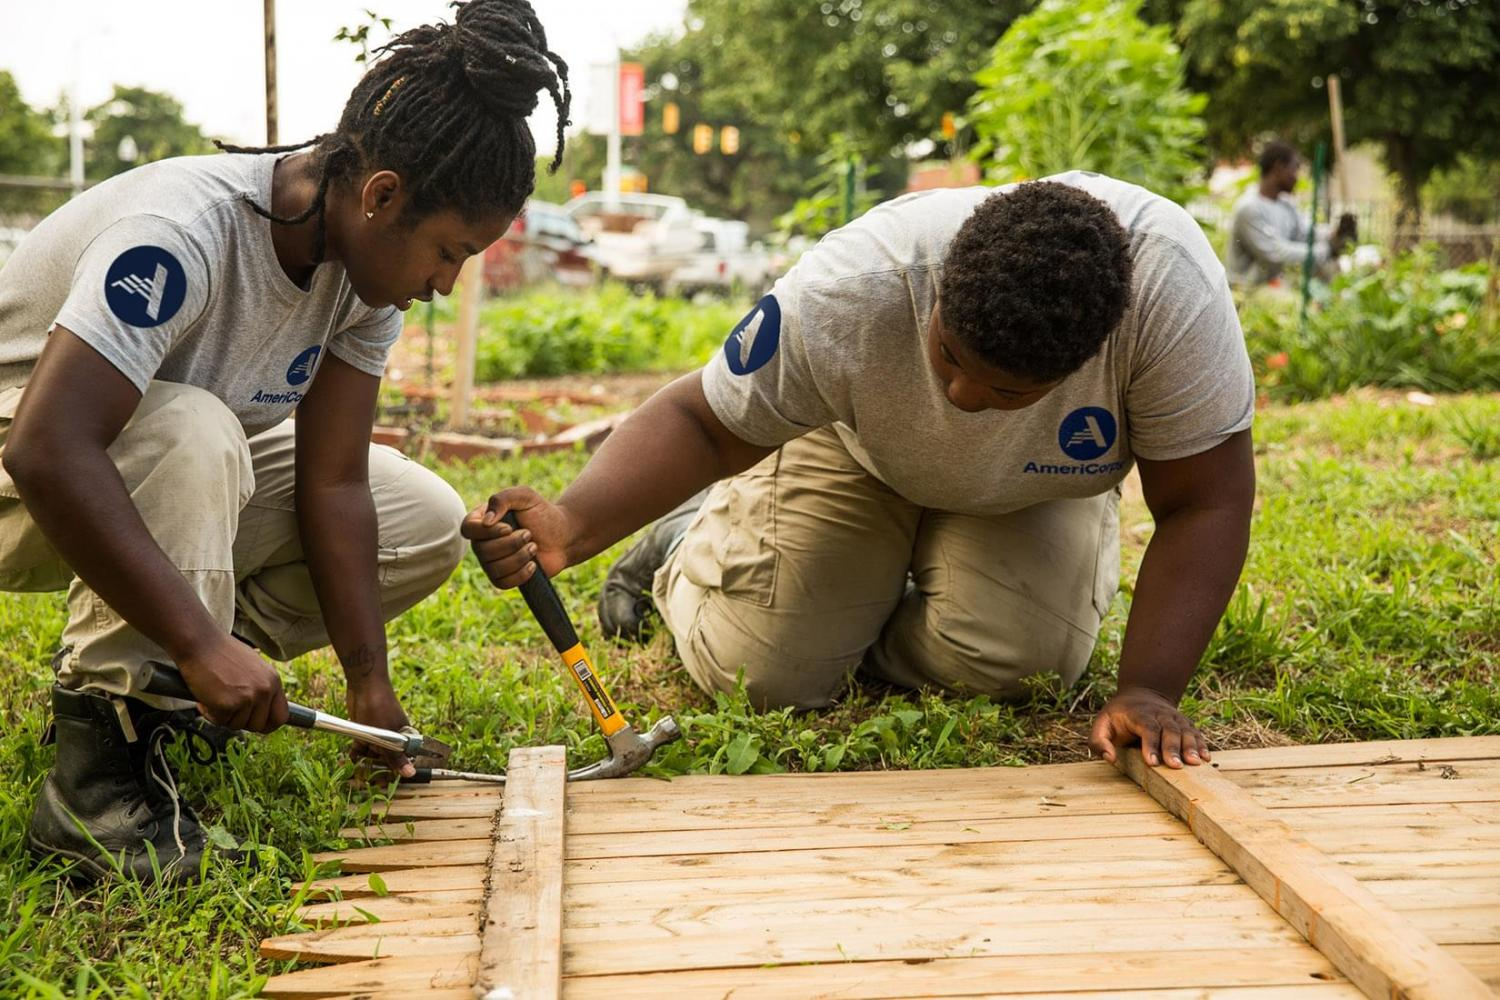 Two women wearing AmeriCorps T-shirts building a fence